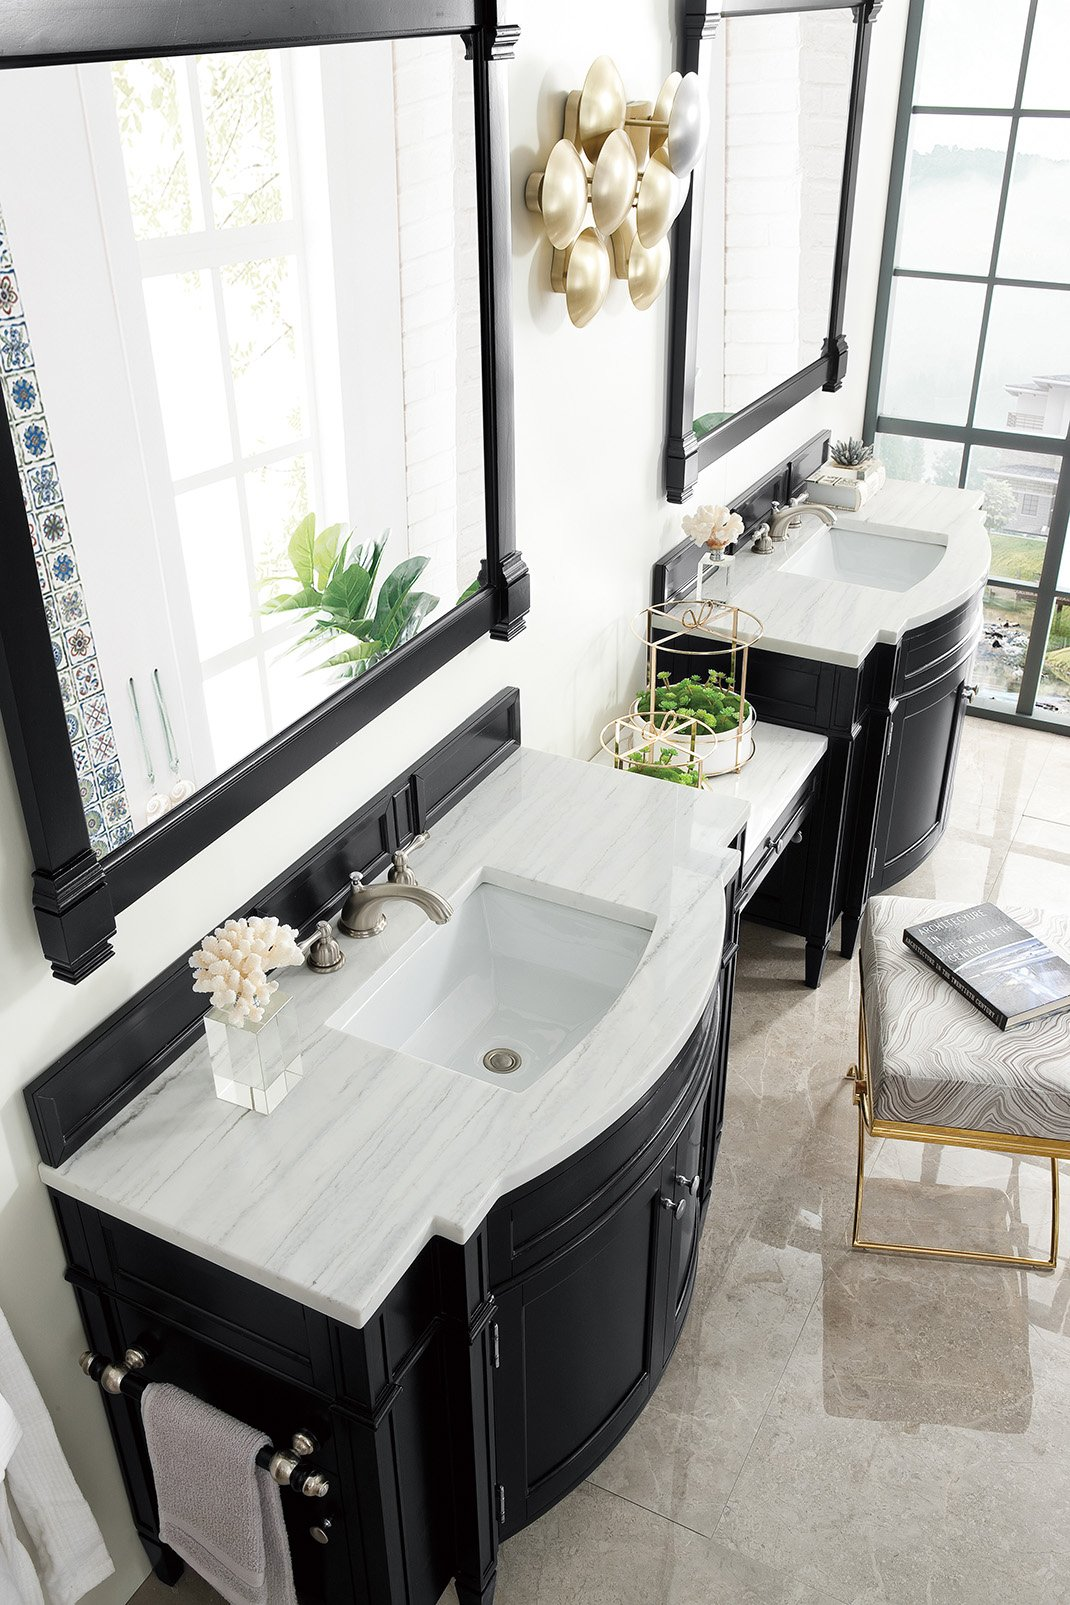 "Brittany 118"" Black Onyx Double Bathroom Vanity Double bathroom Vanity James Martin Vanities"